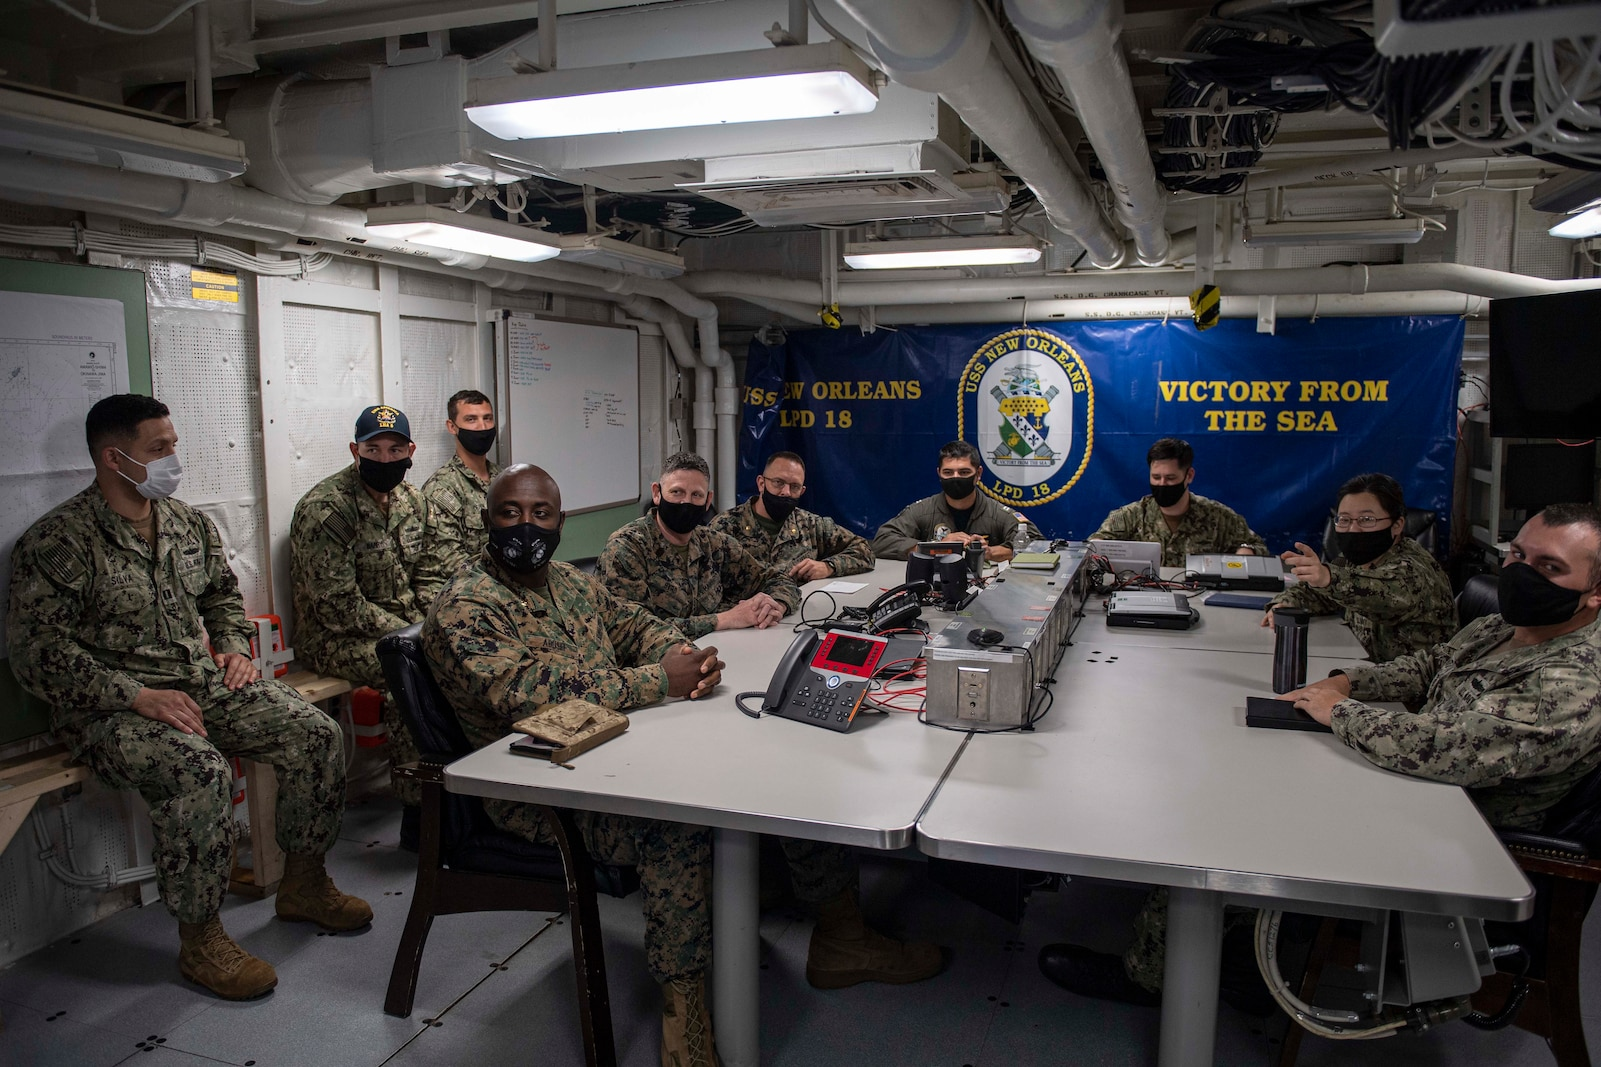 SASEBO, Japan (April 26, 2021) Staff of the 3D Marine Expeditionary Brigade (3D MEB), part of III Marine Expeditionary Force, and the USS New Orleans (LPD 18), part of Commander Task Force-76 (CTF-76), 7th Fleet, conduct a video teleconference onboard ship April 26 as part of Fleet Synthetic Training-Joint (FST-J). Pictured from 3D MEB are Maj. Jeff Adusei, Future Operations planner; Master Sgt. Justin Byrd, Fires and Effects Chief; and Maj. Brian Taylor, Air Planner. Teamwork between 3D MEB and CTF-76 greatly expands the network of resources that can be brought to bear on any given problem in any given location. New Orleans, part of the America Amphibious Ready Group, along with the 3D Marine Expeditionary Brigade, was operating in the U.S. 7th Fleet area of responsibility to enhance interoperability with allies and partners and serve as a ready response force to defend peace and stability in the Indo-Pacific region. (U.S. Navy photos by Mass Communication Specialist 2nd Class Kelby Sanders)